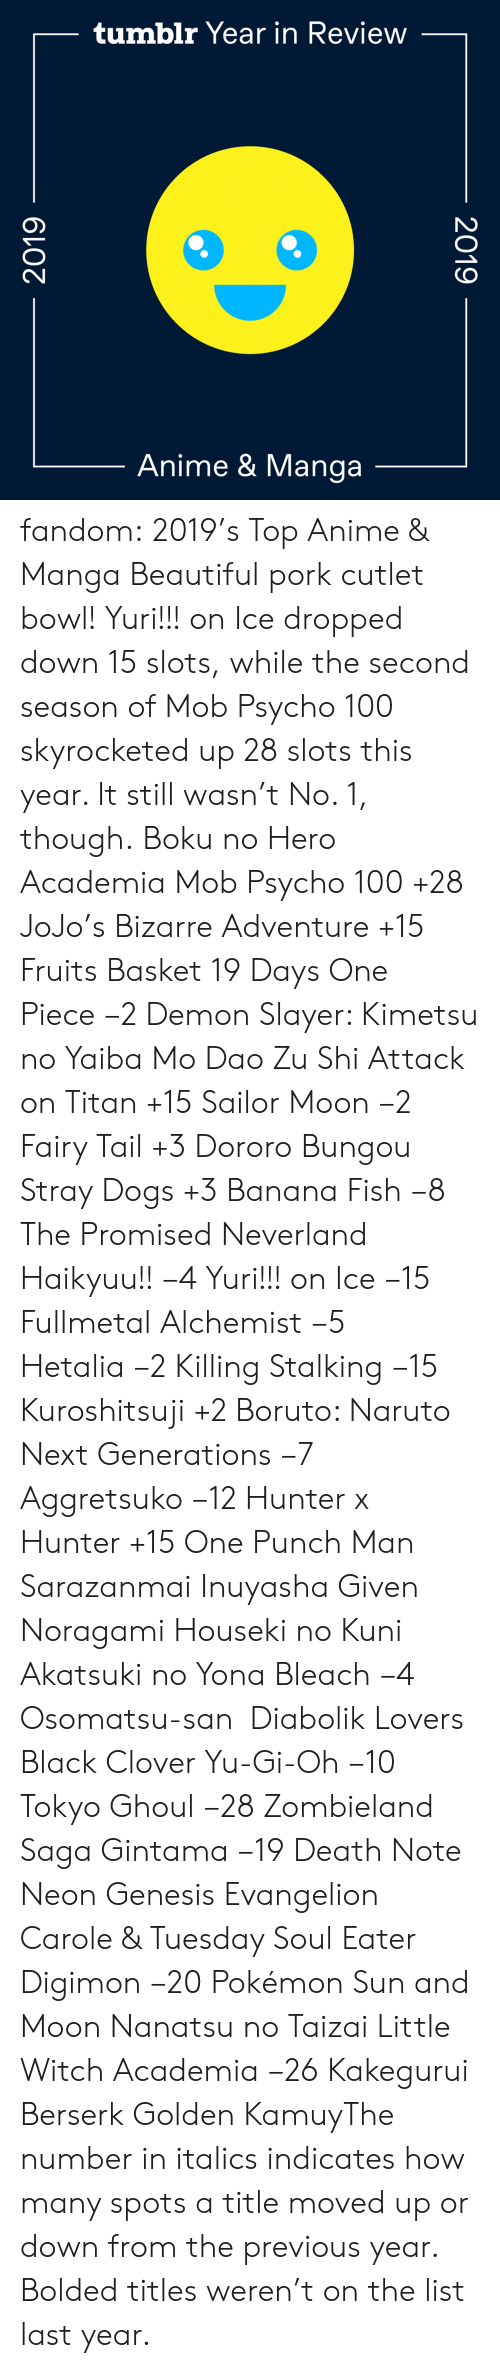 tail: tumblr Year in Review  Anime & Manga  2019  2019 fandom:  2019's Top Anime & Manga  Beautiful pork cutlet bowl! Yuri!!! on Ice dropped down 15 slots, while the second season of Mob Psycho 100 skyrocketed up 28 slots this year. It still wasn't No. 1, though.  Boku no Hero Academia  Mob Psycho 100 +28  JoJo's Bizarre Adventure +15  Fruits Basket  19 Days  One Piece −2  Demon Slayer: Kimetsu no Yaiba  Mo Dao Zu Shi  Attack on Titan +15  Sailor Moon −2  Fairy Tail +3  Dororo  Bungou Stray Dogs +3  Banana Fish −8  The Promised Neverland  Haikyuu!! −4  Yuri!!! on Ice −15  Fullmetal Alchemist −5  Hetalia −2  Killing Stalking −15  Kuroshitsuji +2  Boruto: Naruto Next Generations −7  Aggretsuko −12  Hunter x Hunter +15  One Punch Man  Sarazanmai  Inuyasha  Given  Noragami  Houseki no Kuni  Akatsuki no Yona  Bleach −4  Osomatsu-san   Diabolik Lovers  Black Clover  Yu-Gi-Oh −10  Tokyo Ghoul −28  Zombieland Saga  Gintama −19  Death Note  Neon Genesis Evangelion  Carole & Tuesday  Soul Eater  Digimon −20  Pokémon Sun and Moon  Nanatsu no Taizai  Little Witch Academia −26  Kakegurui  Berserk Golden KamuyThe number in italics indicates how many spots a title moved up or down from the previous year. Bolded titles weren't on the list last year.